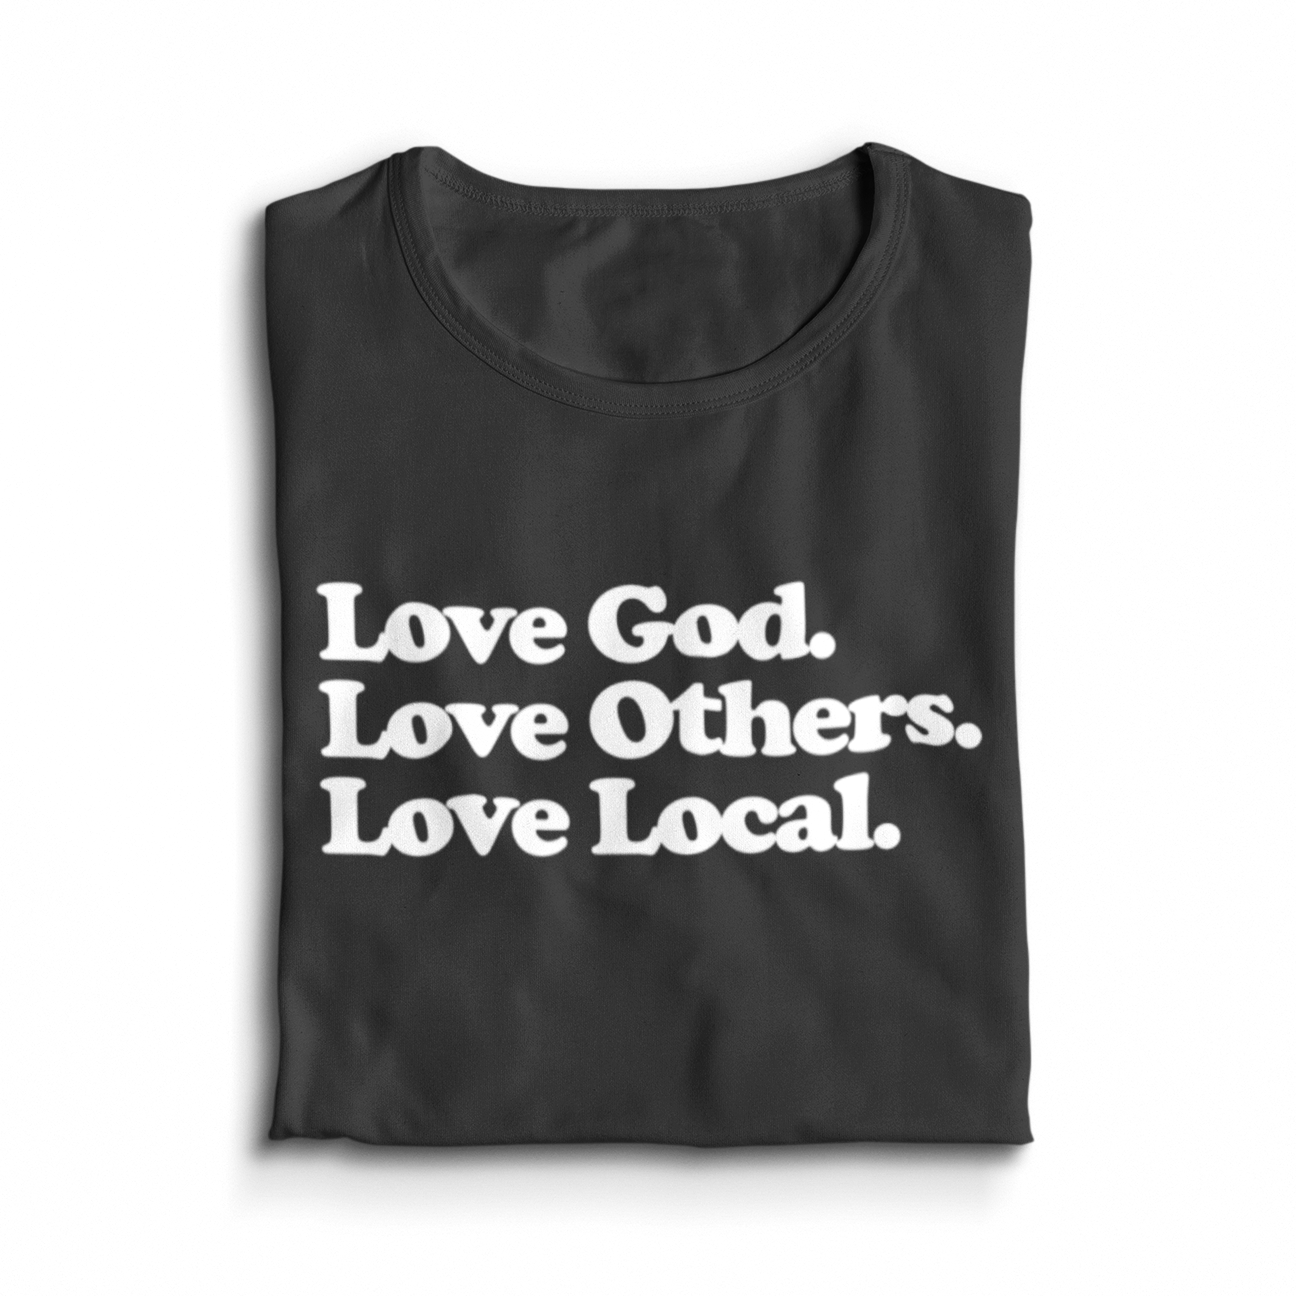 Love Local T-Shirt